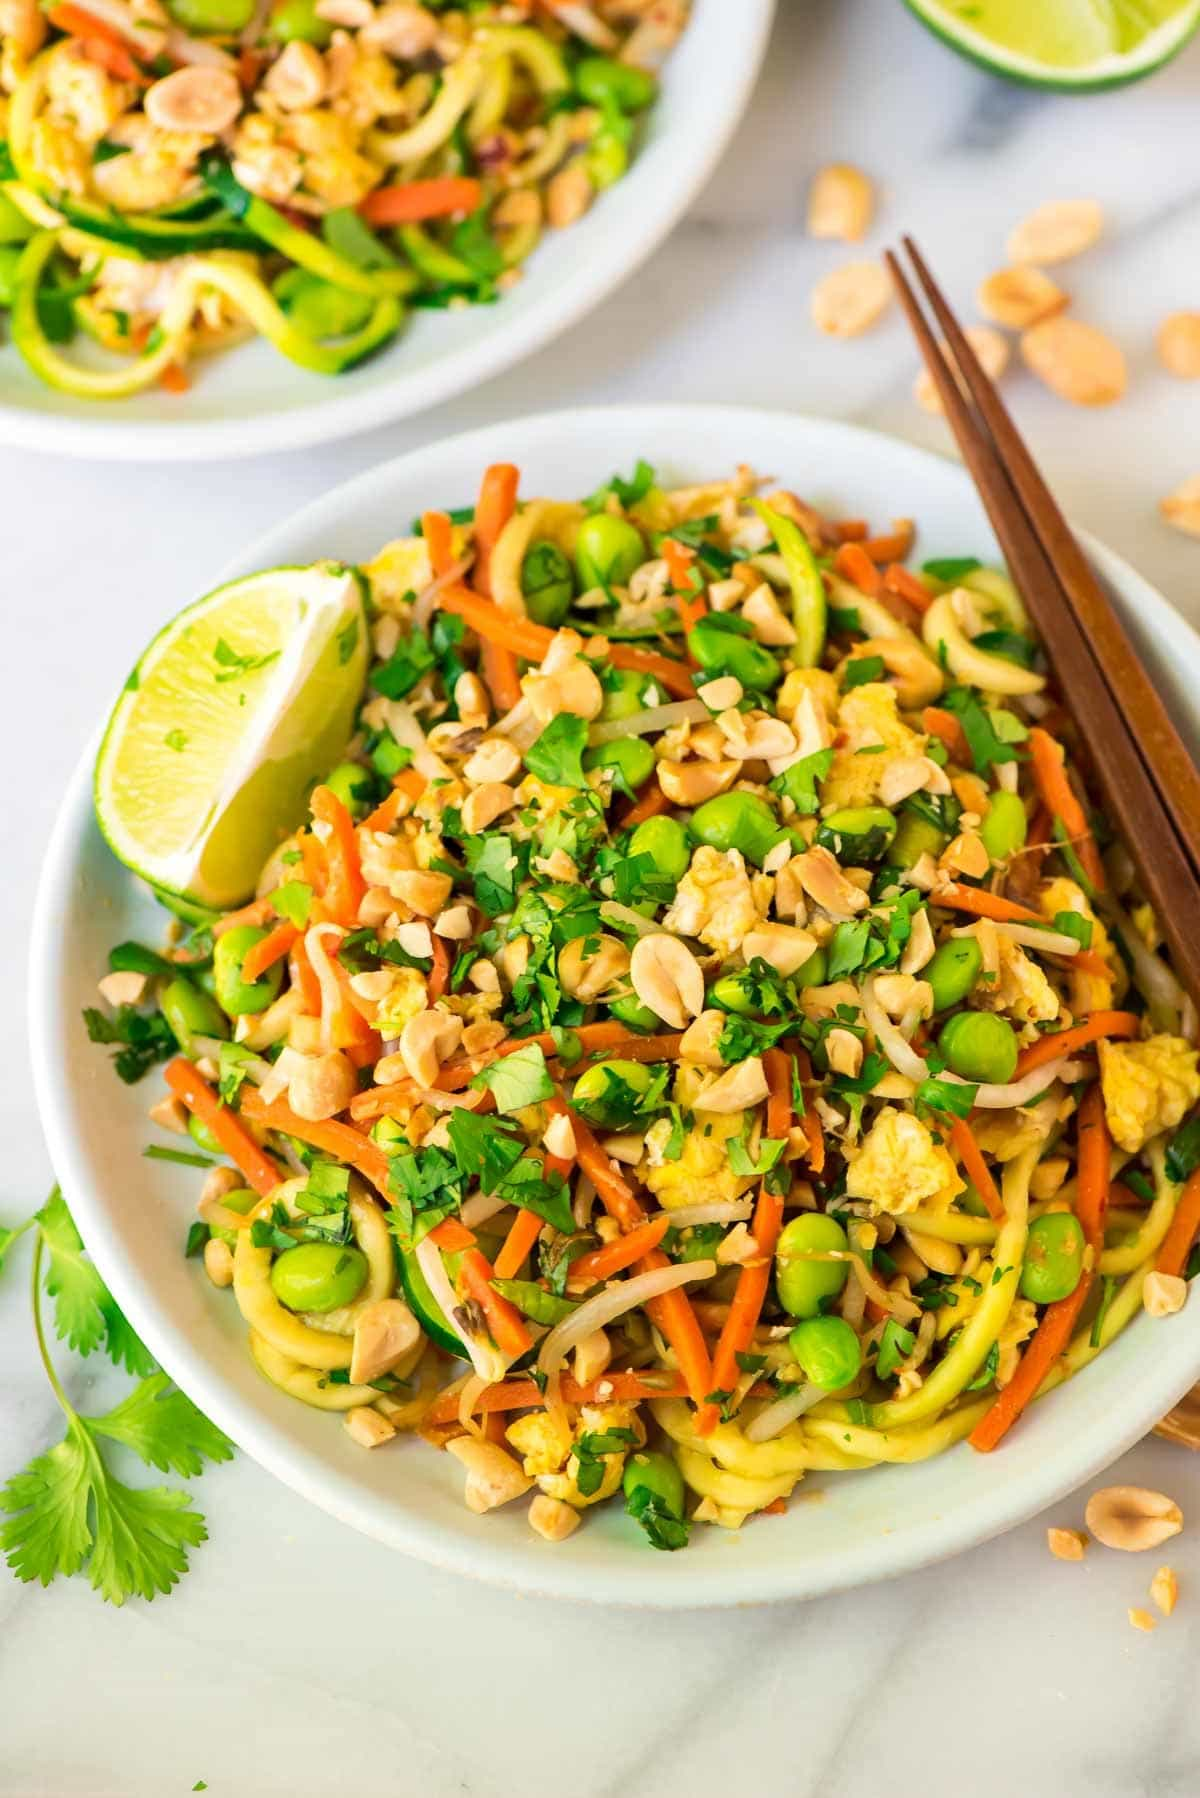 Peanut Vegetarian Pad Thai with Zoodles. Ultra flavorful, protein packed, and so fast and easy to make at home! A healthy one-pot meal that's ready in 30 minutes. Perfect for busy weeknights and families! Recipe at wellplated.com | @wellplated